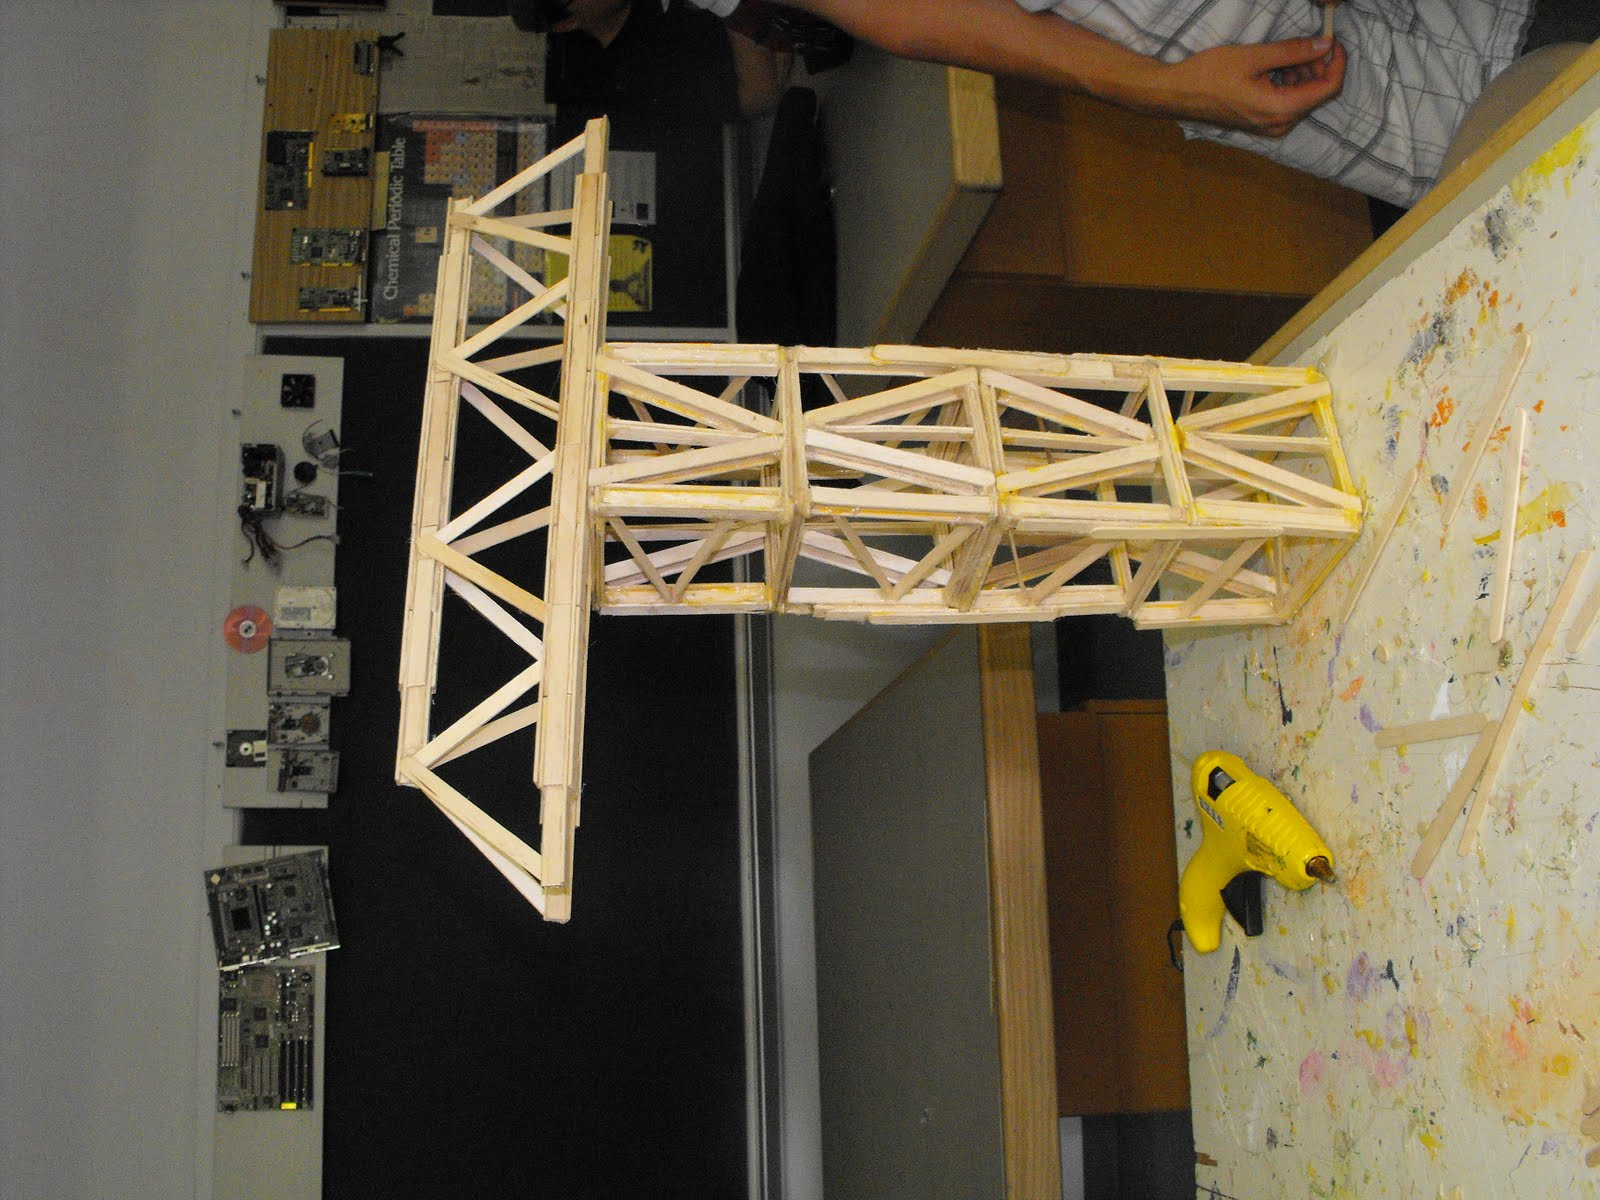 Tower Crane Using Popsicle Sticks How To Build A Popsicle Stick